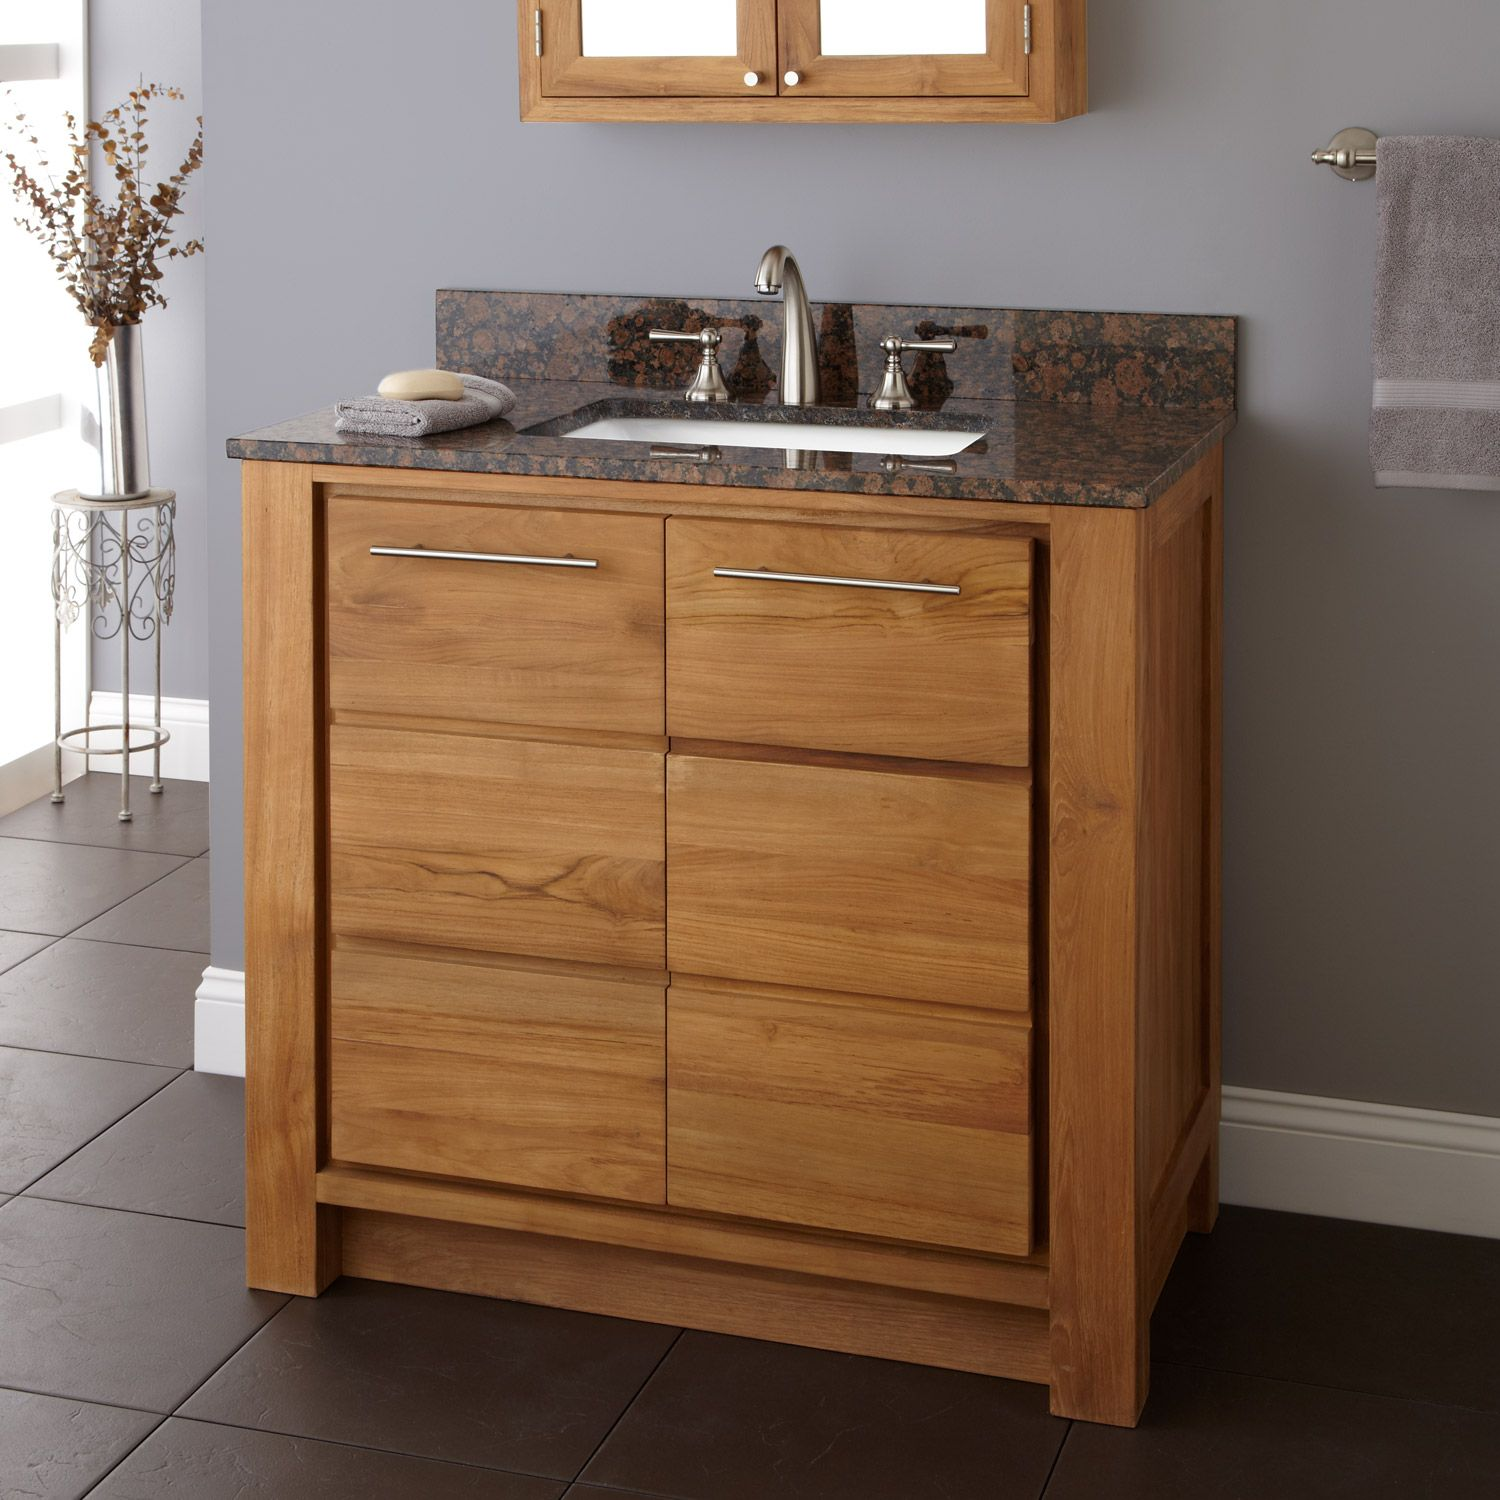 36 Antioch Teak Vanity For Rectangular Undermount Sink  Natural